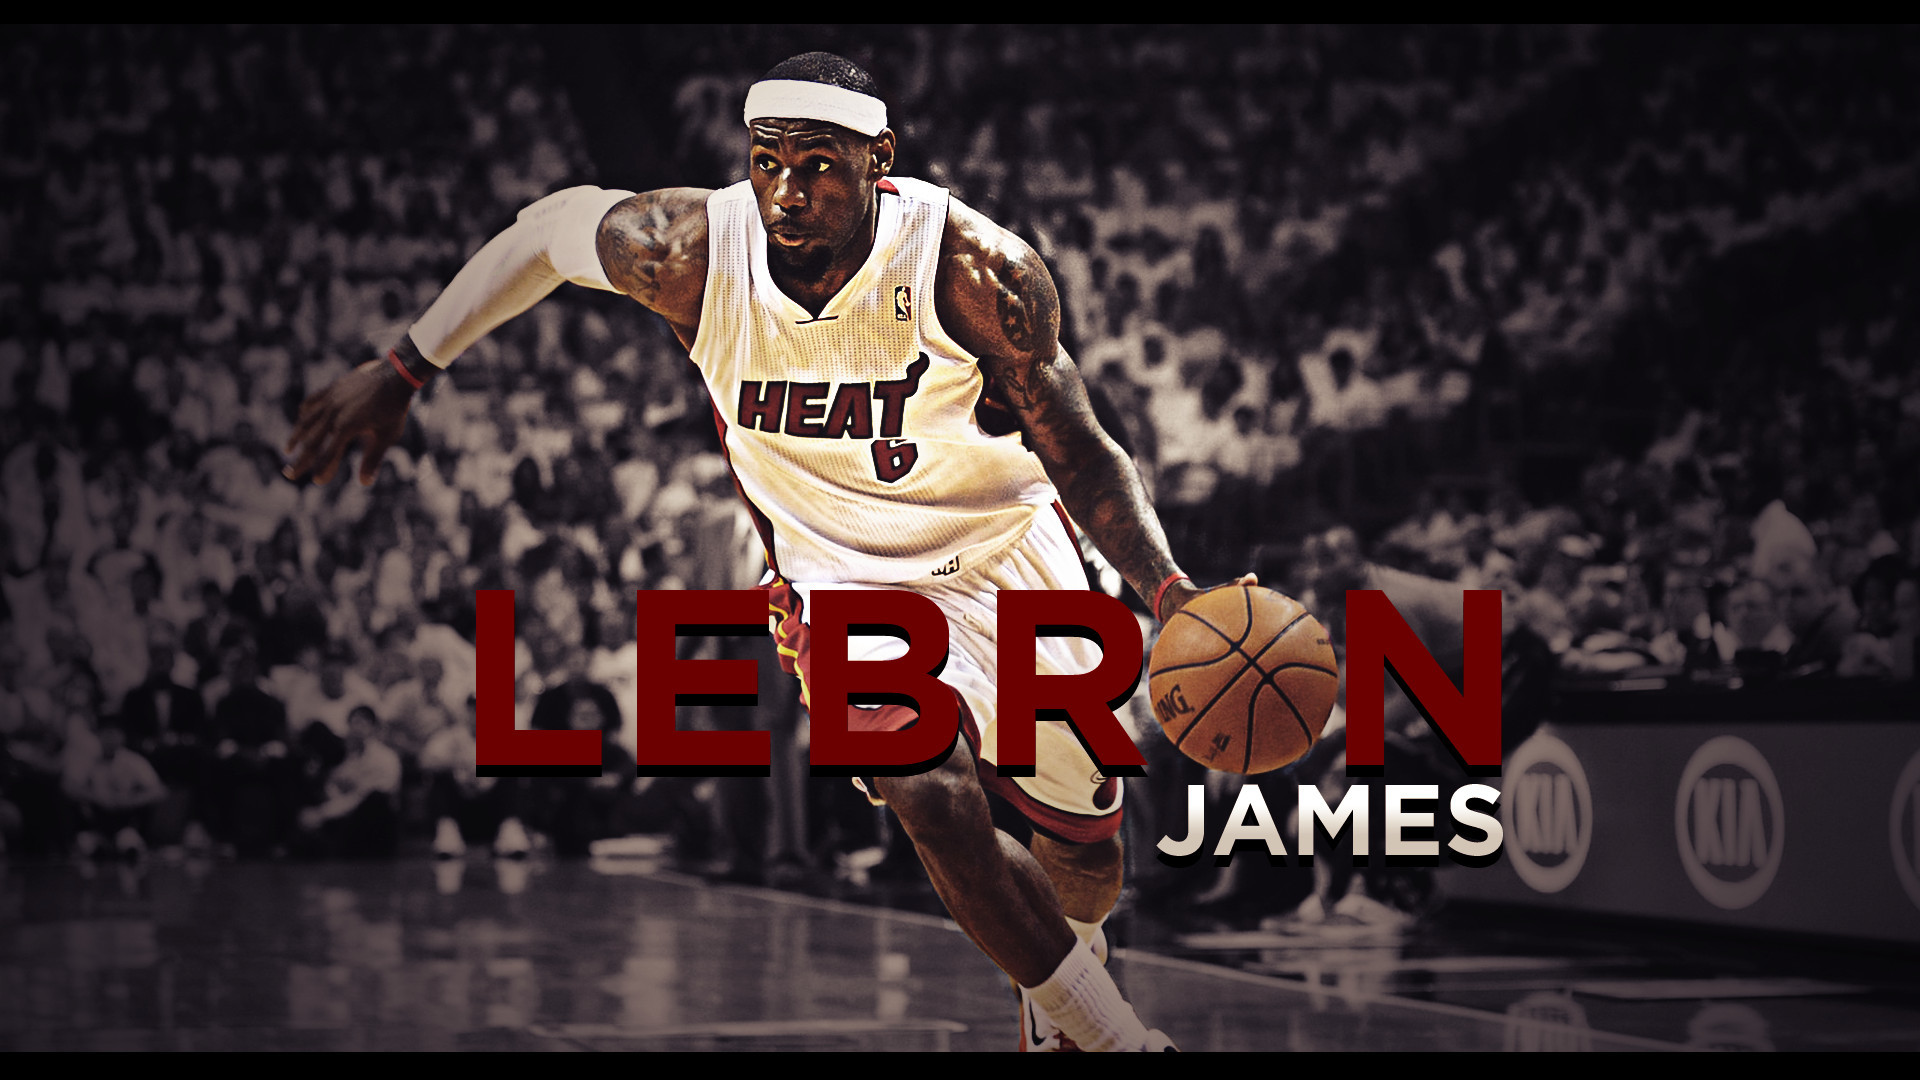 1920x1080 LeBron James Miami Heat Finals 2012 NBA Wallpaper - will LeBron win his  first NBA Championship in